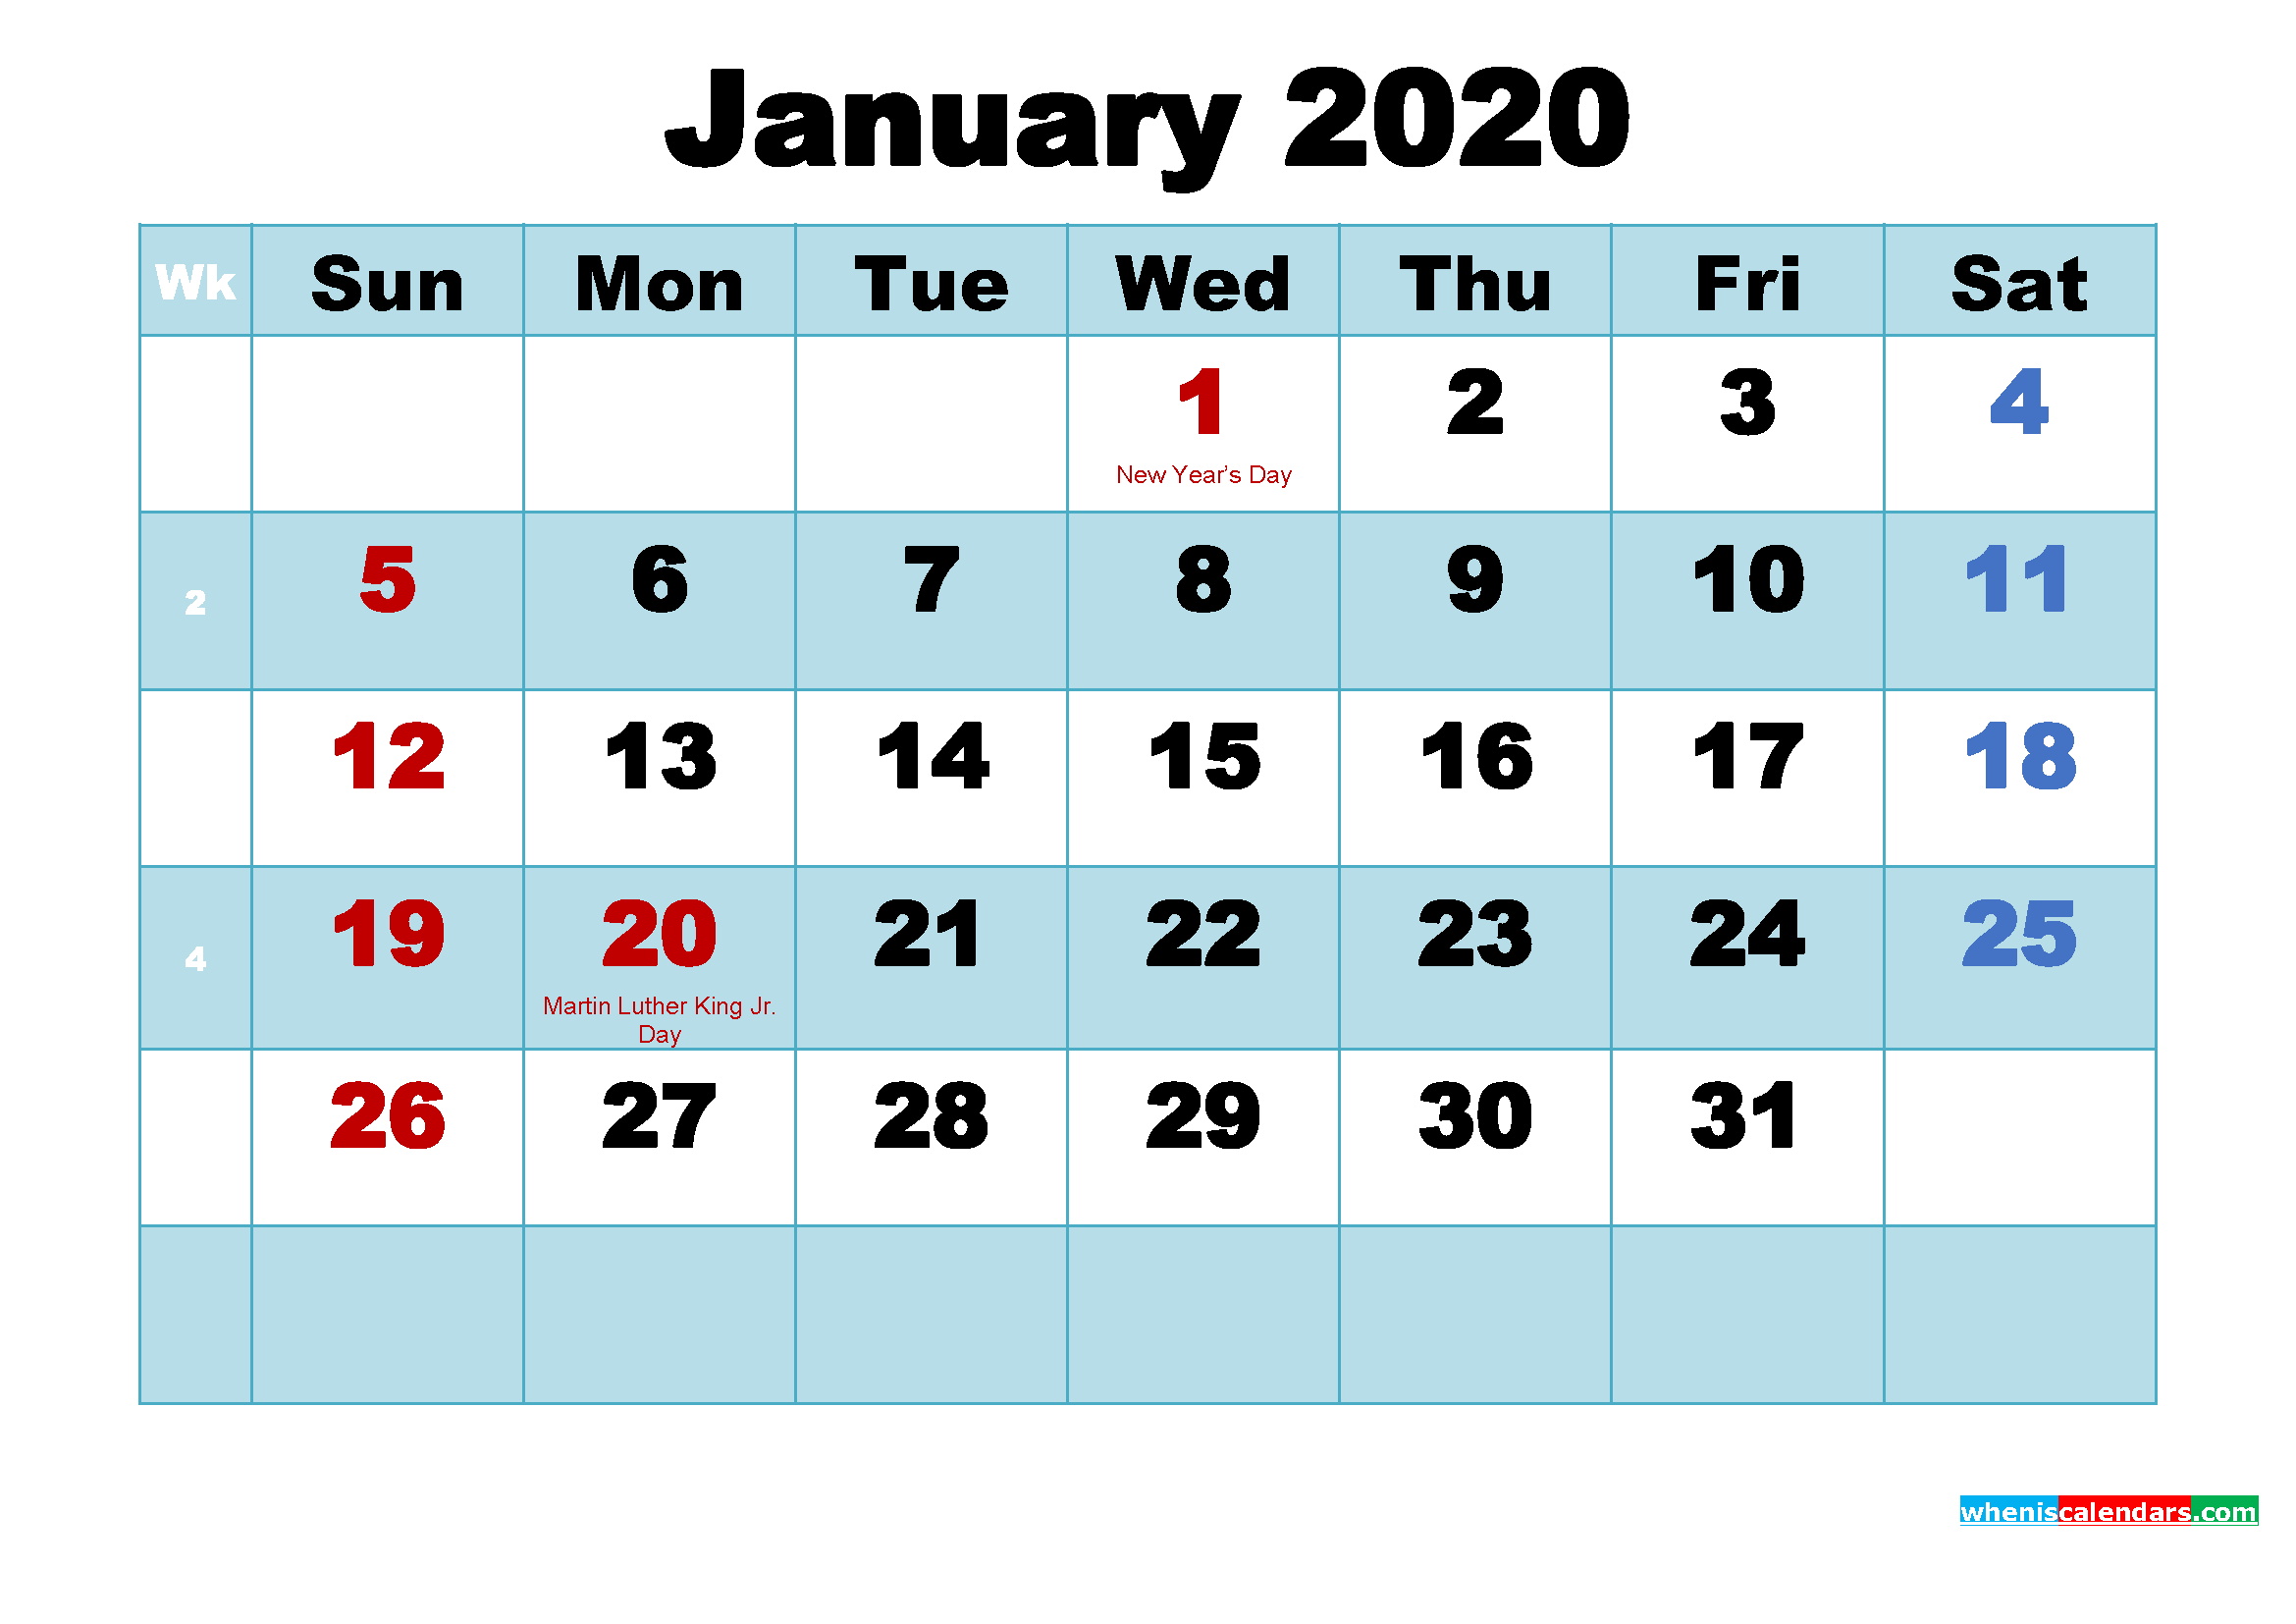 January 2020 Free Printable Calendar with Holidays